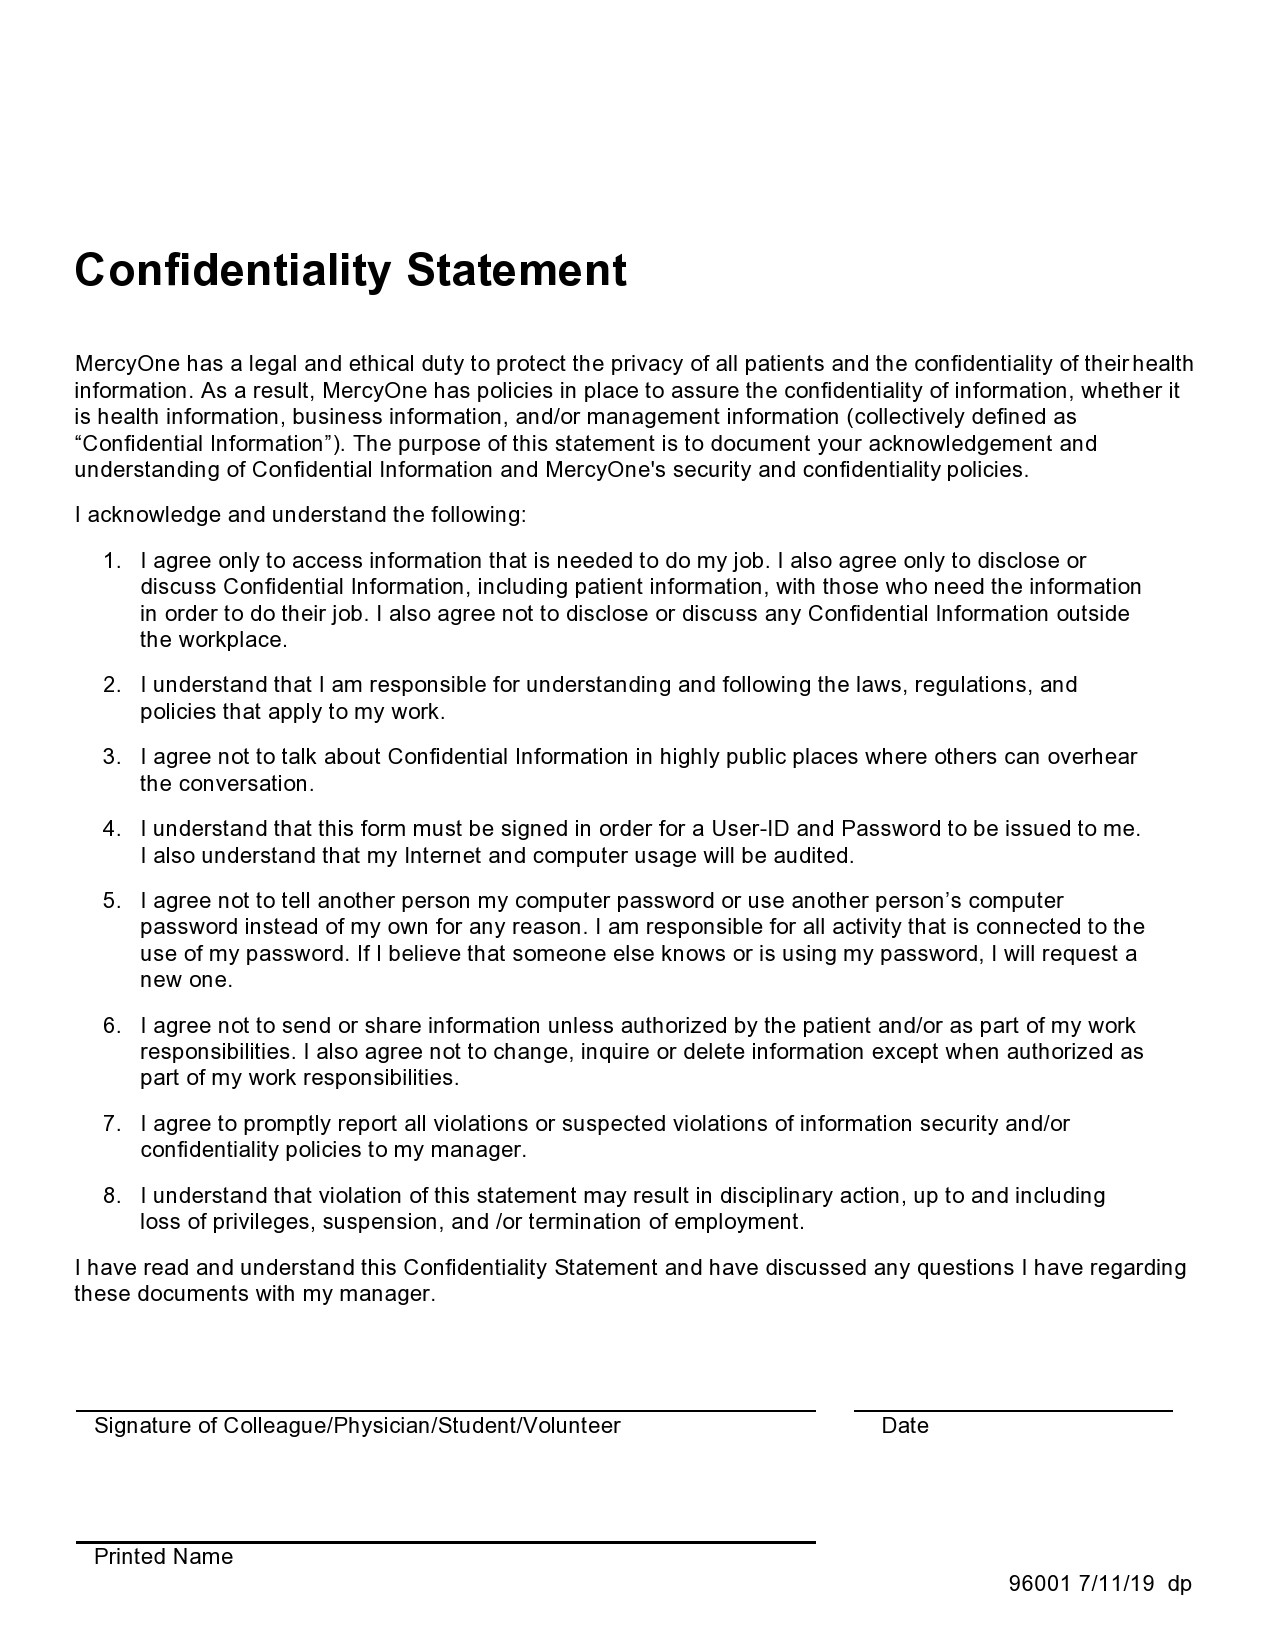 confidentiality statement template 21